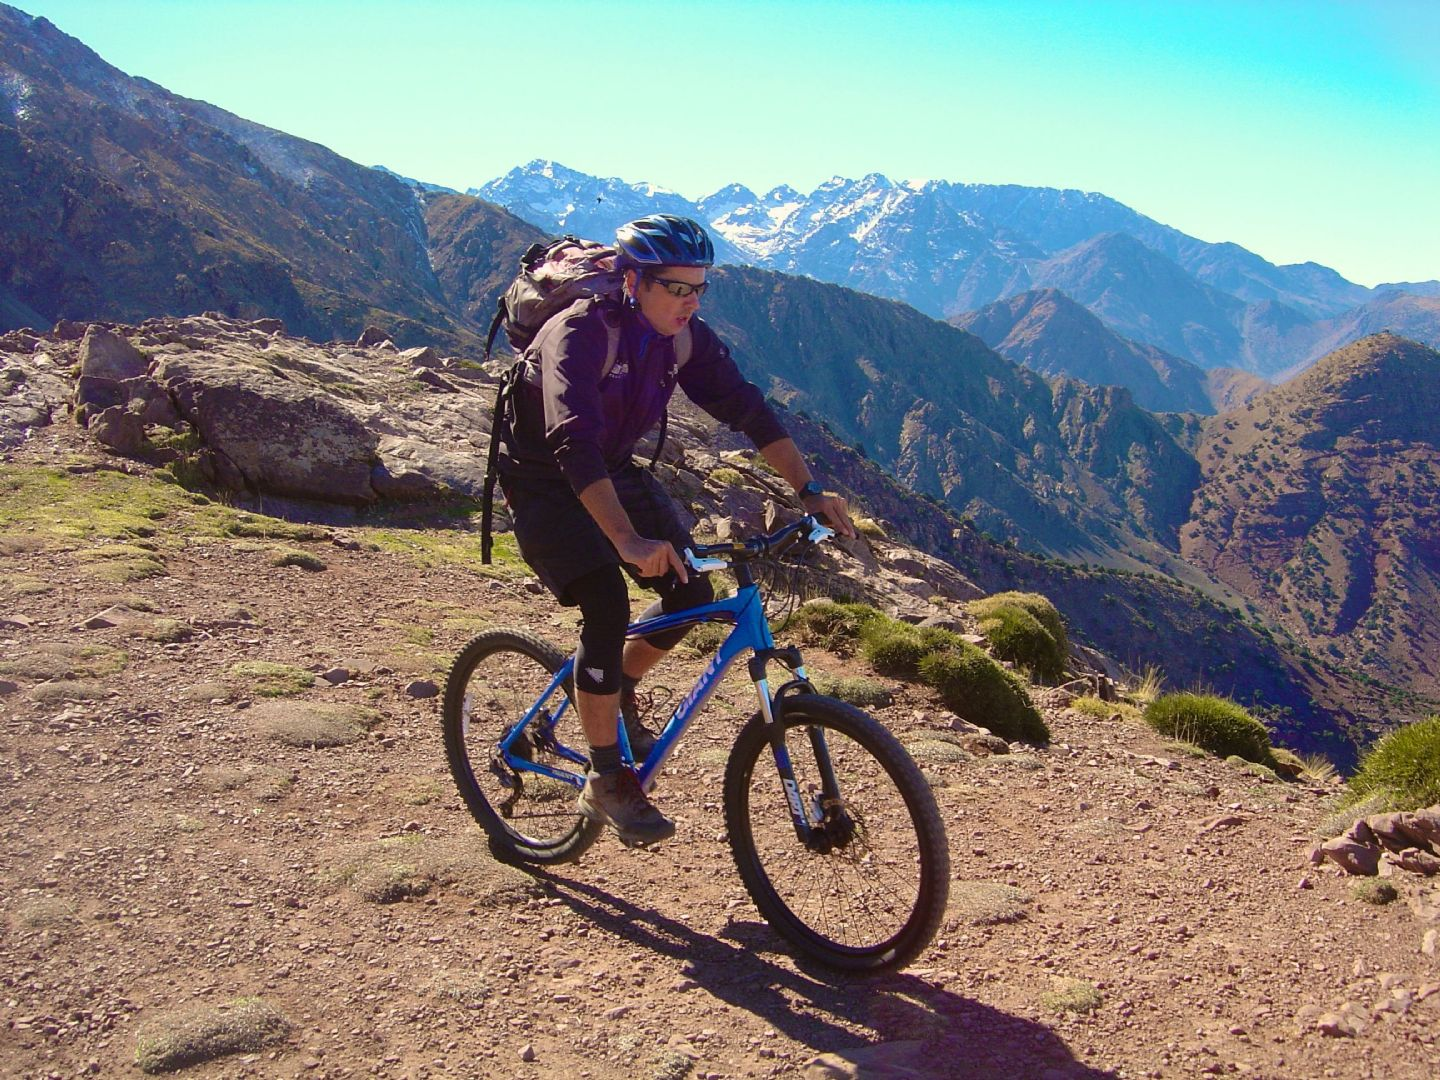 morocco traverse 1 (1).jpg - Morocco - High Atlas Traverse - Guided Mountain Bike Holiday - Mountain Biking